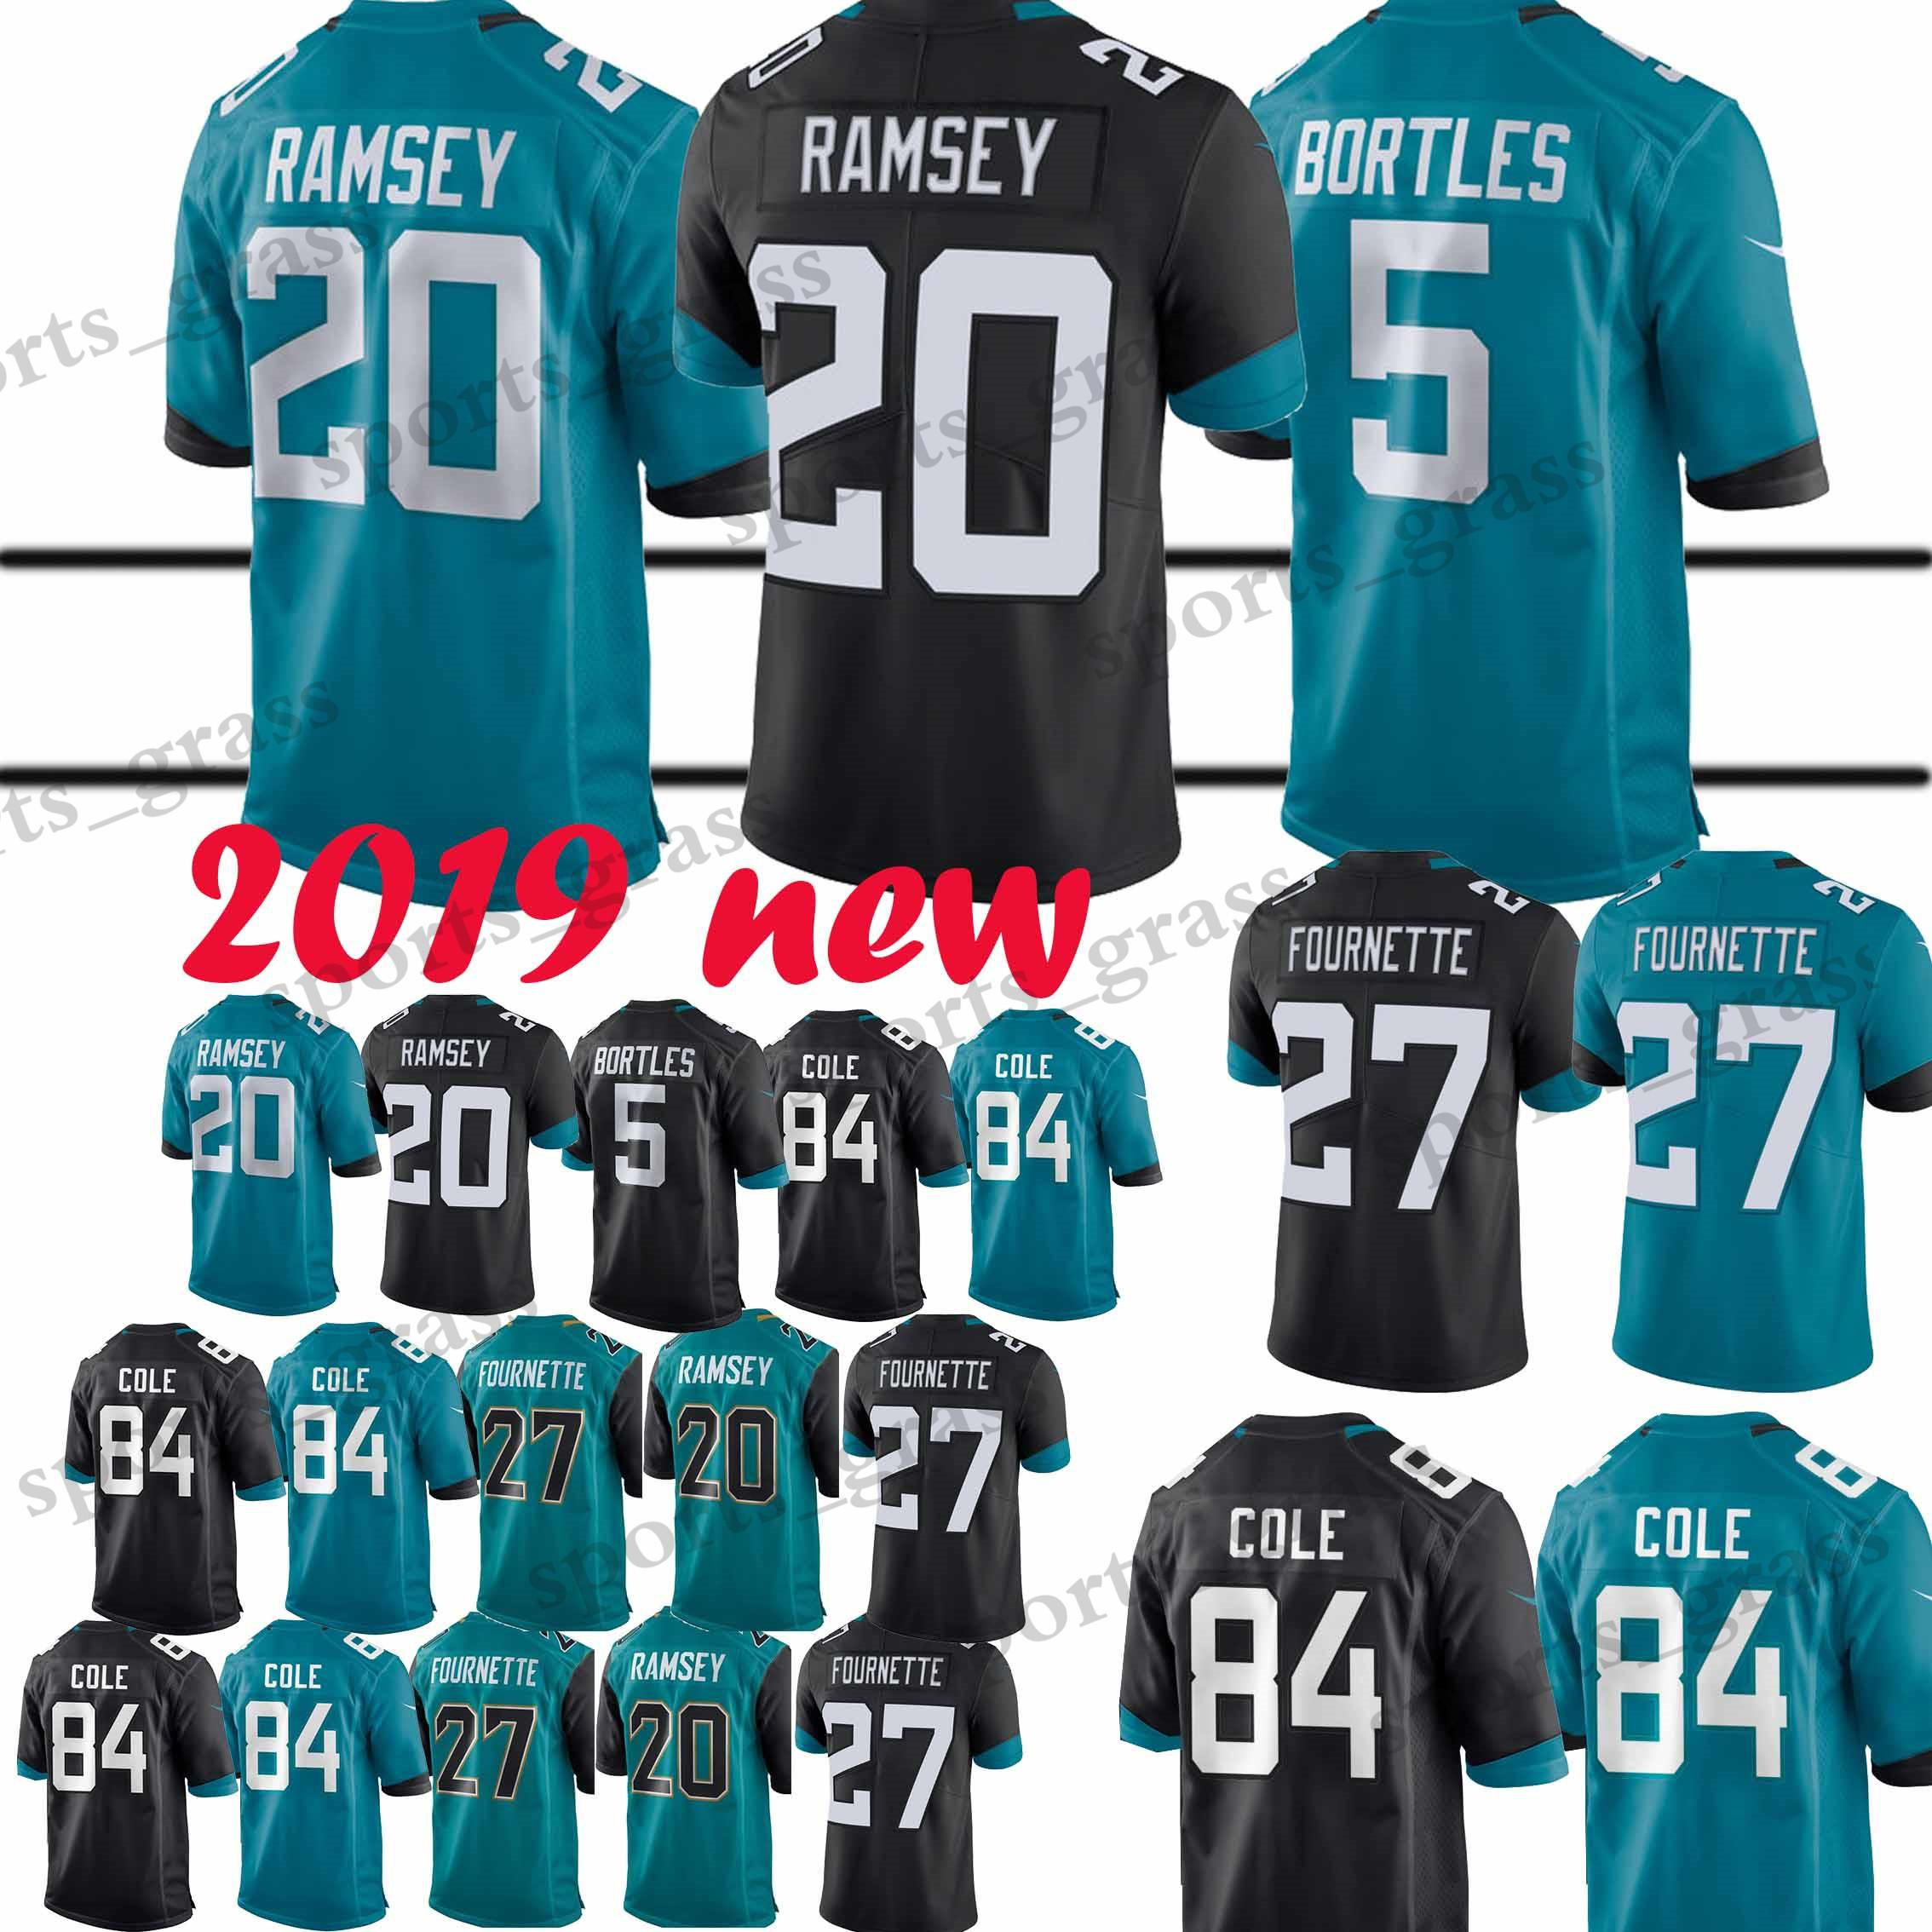 73781c54 Jacksonville Jaguars : wholesale nfl jerseys usa nfl wholesale ...